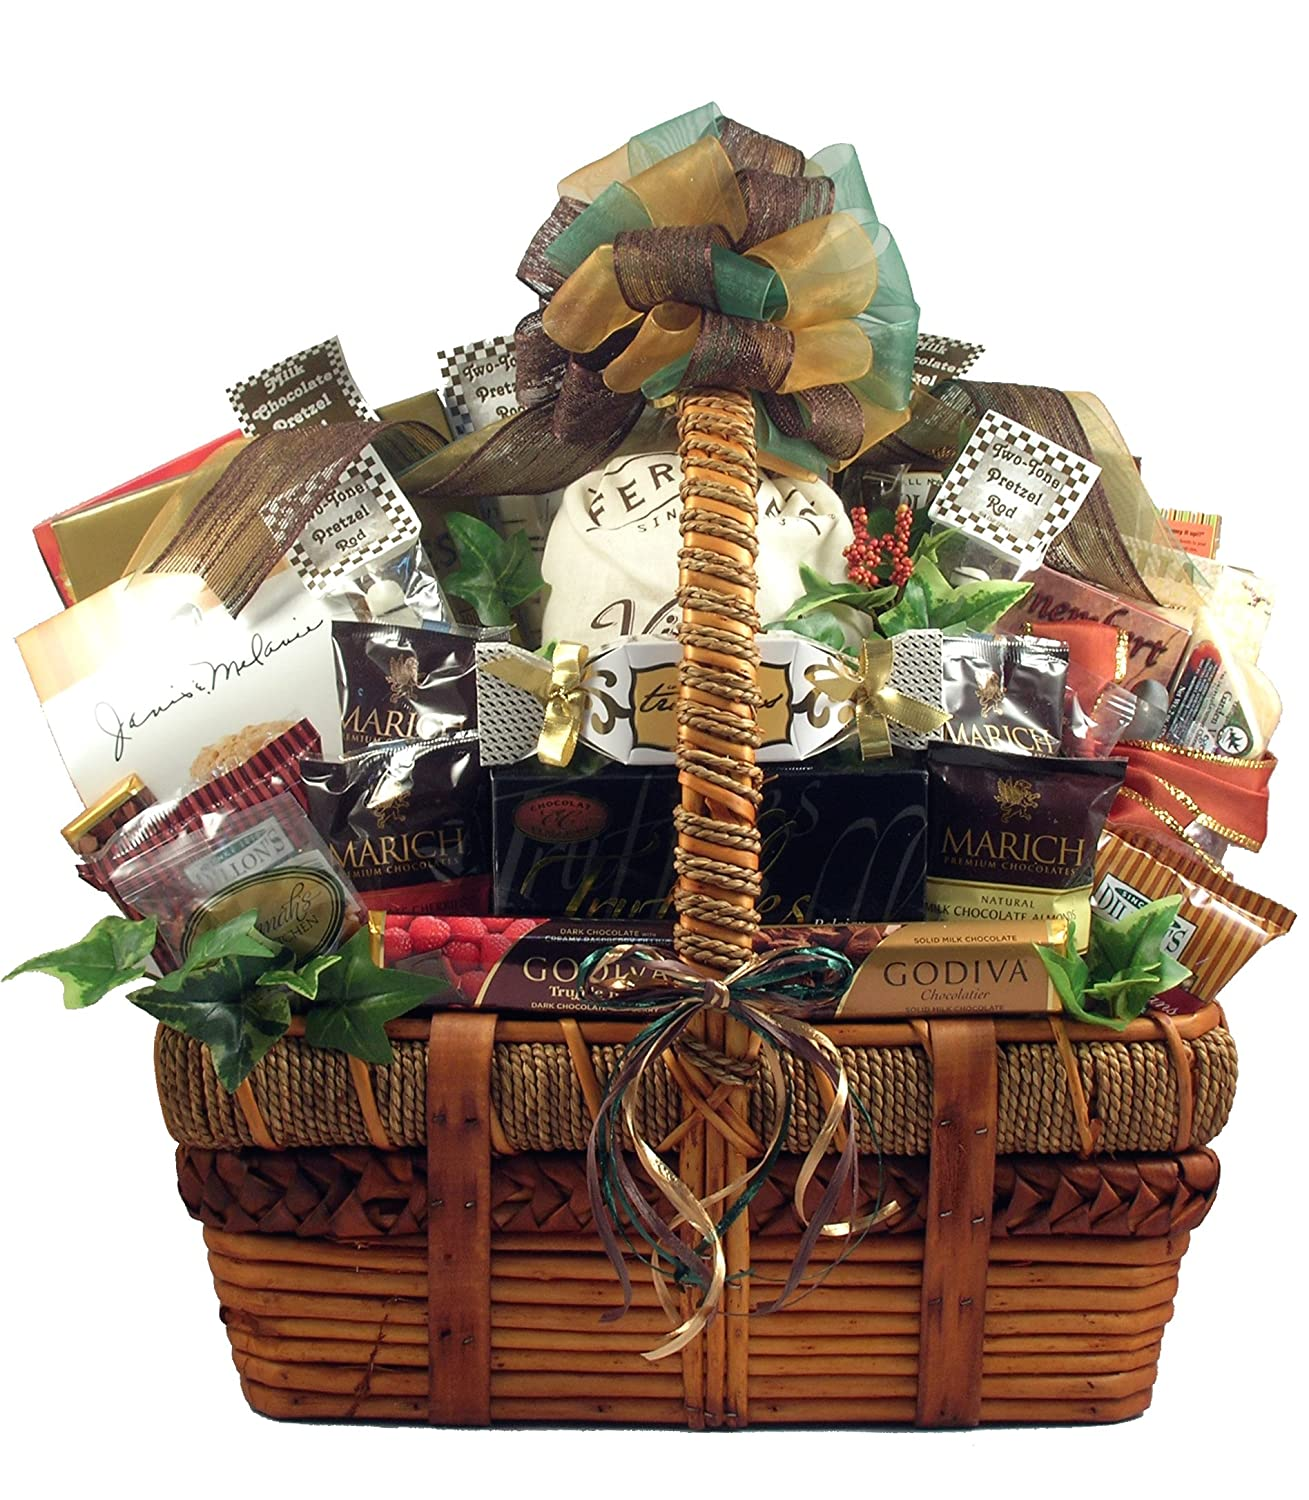 The Ultimate Gourmet, Large Gift Basket For A Group Or Family - Loaded with Sweet Treats & Savory Snacks, 14 lb